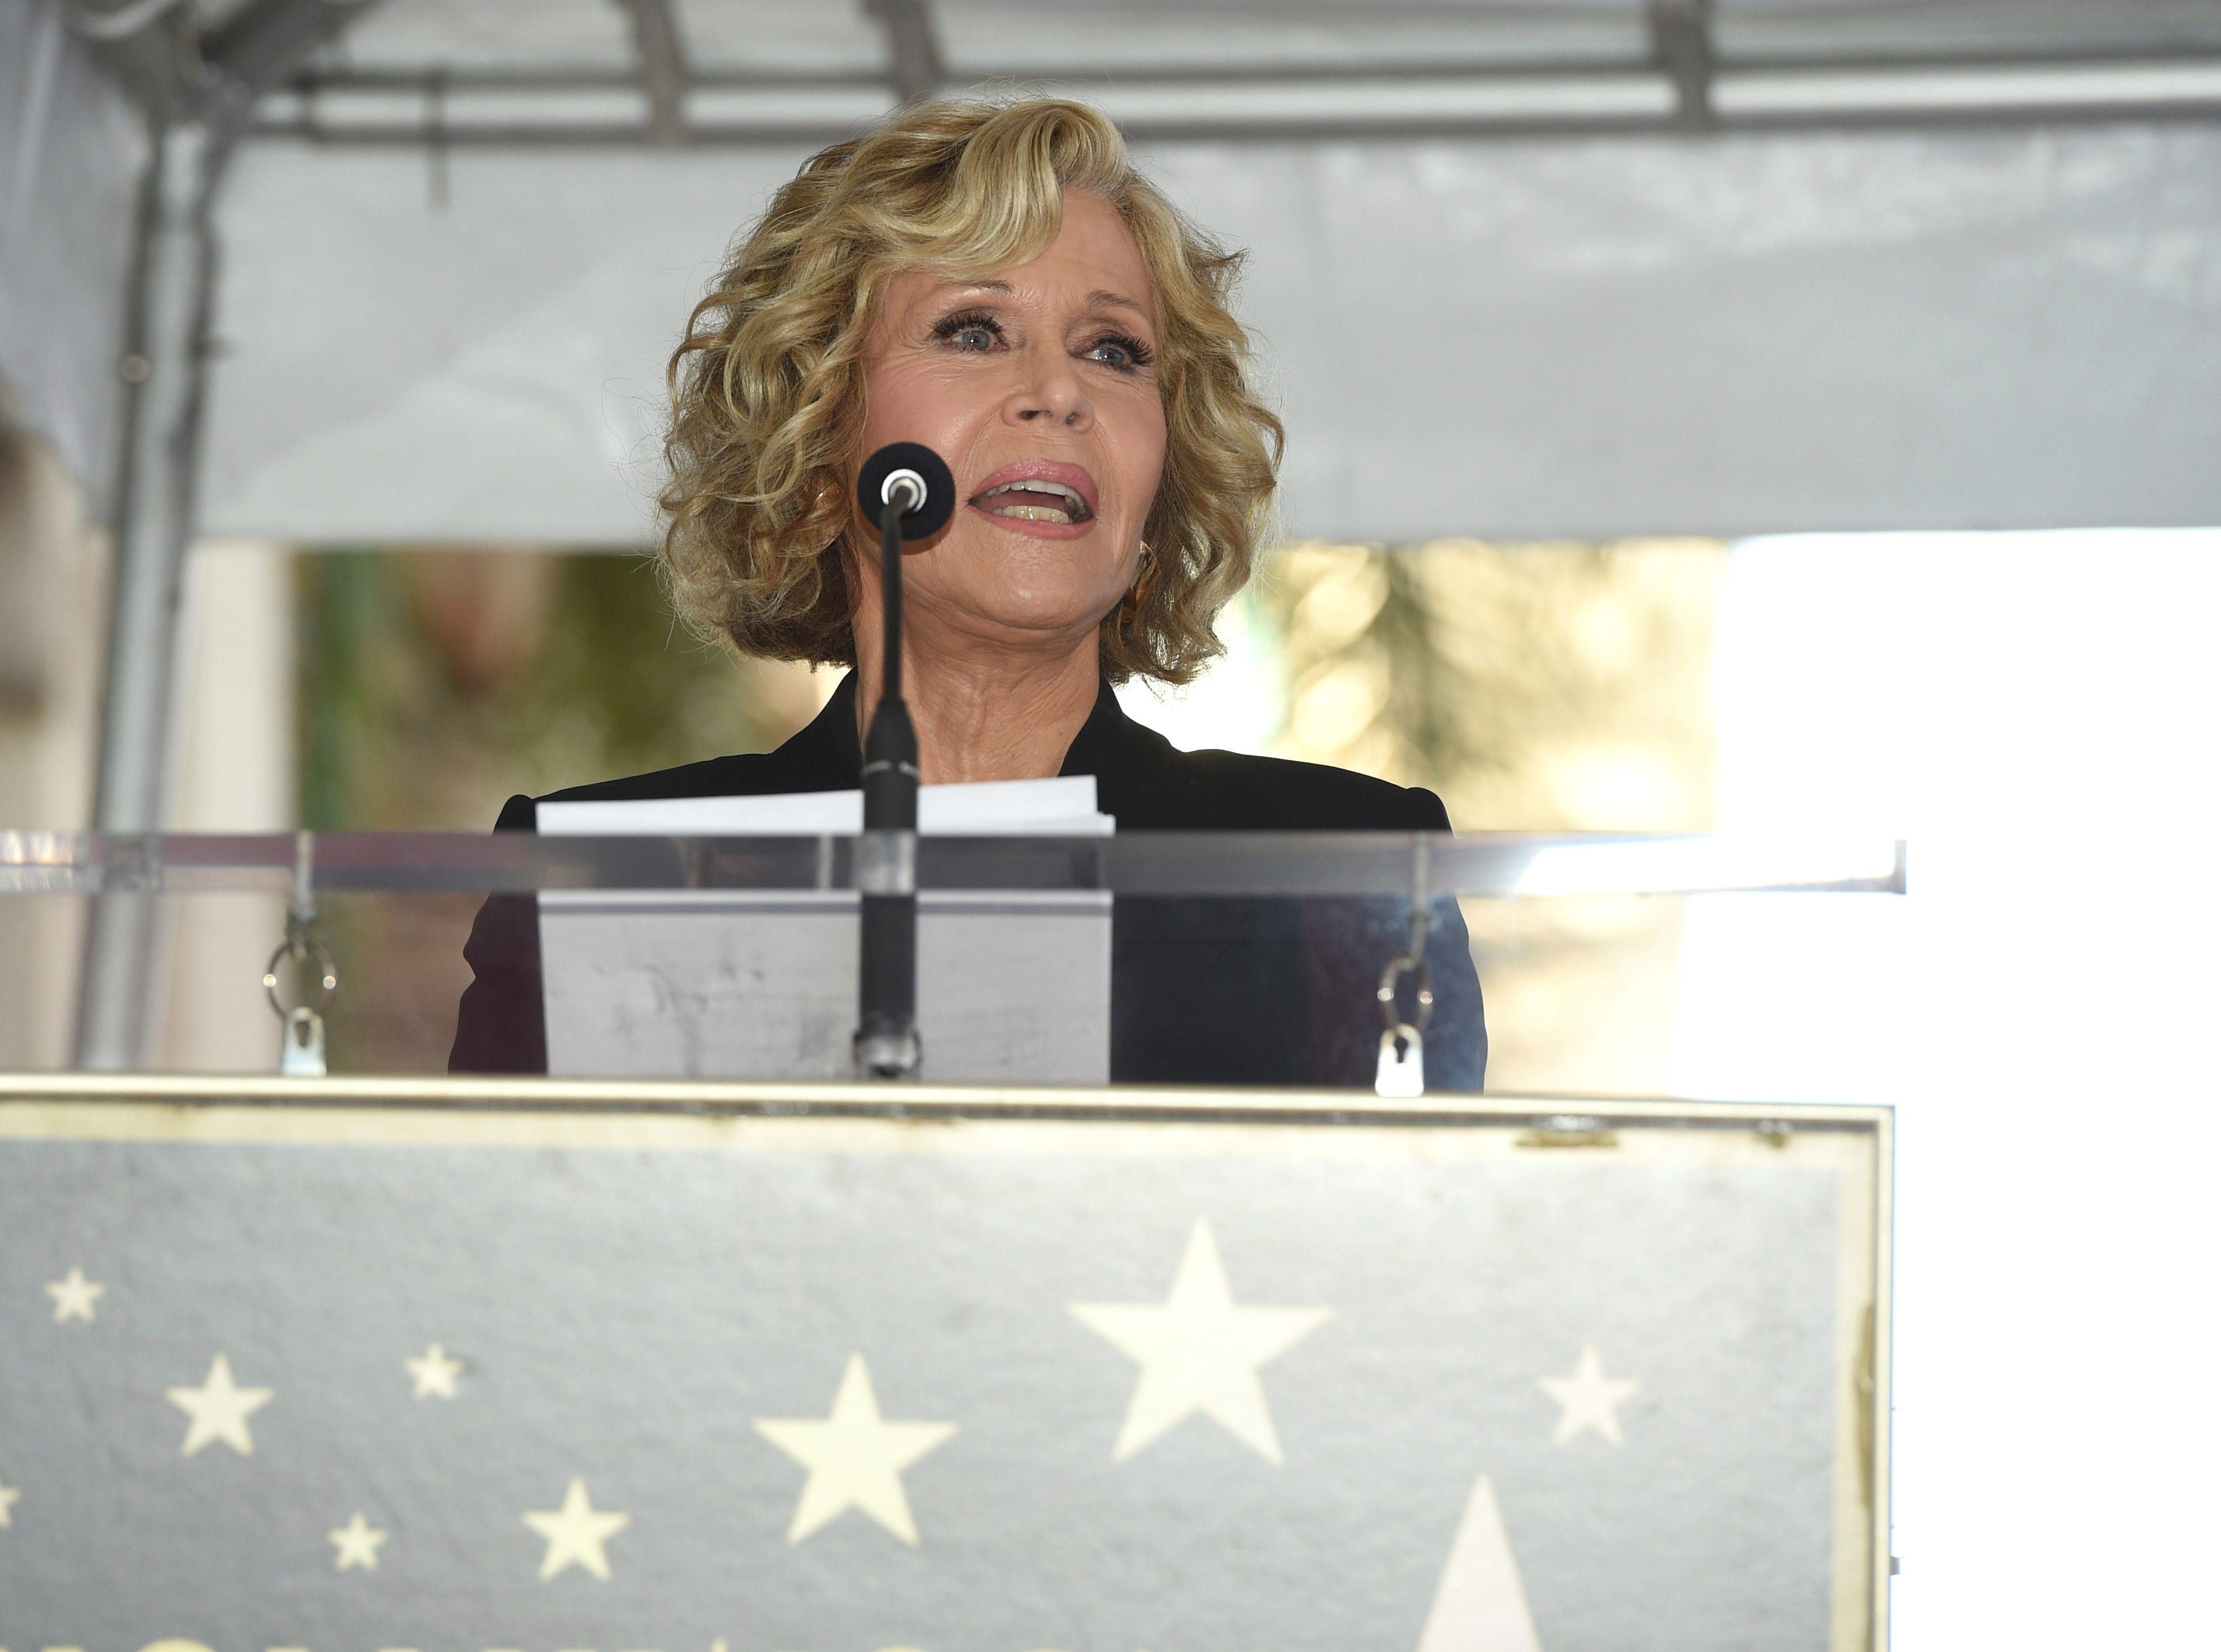 """Actress Jane Fonda, a co-star in the film """"The China Syndrome,"""" speaks during a ceremony honoring actor Michael Douglas with a star on the Hollywood Walk of Fame on Tuesday, Nov. 6, 2018, in Los Angeles. (Photo by Chris Pizzello/Invision/AP) ORG XMIT: CAPM107"""